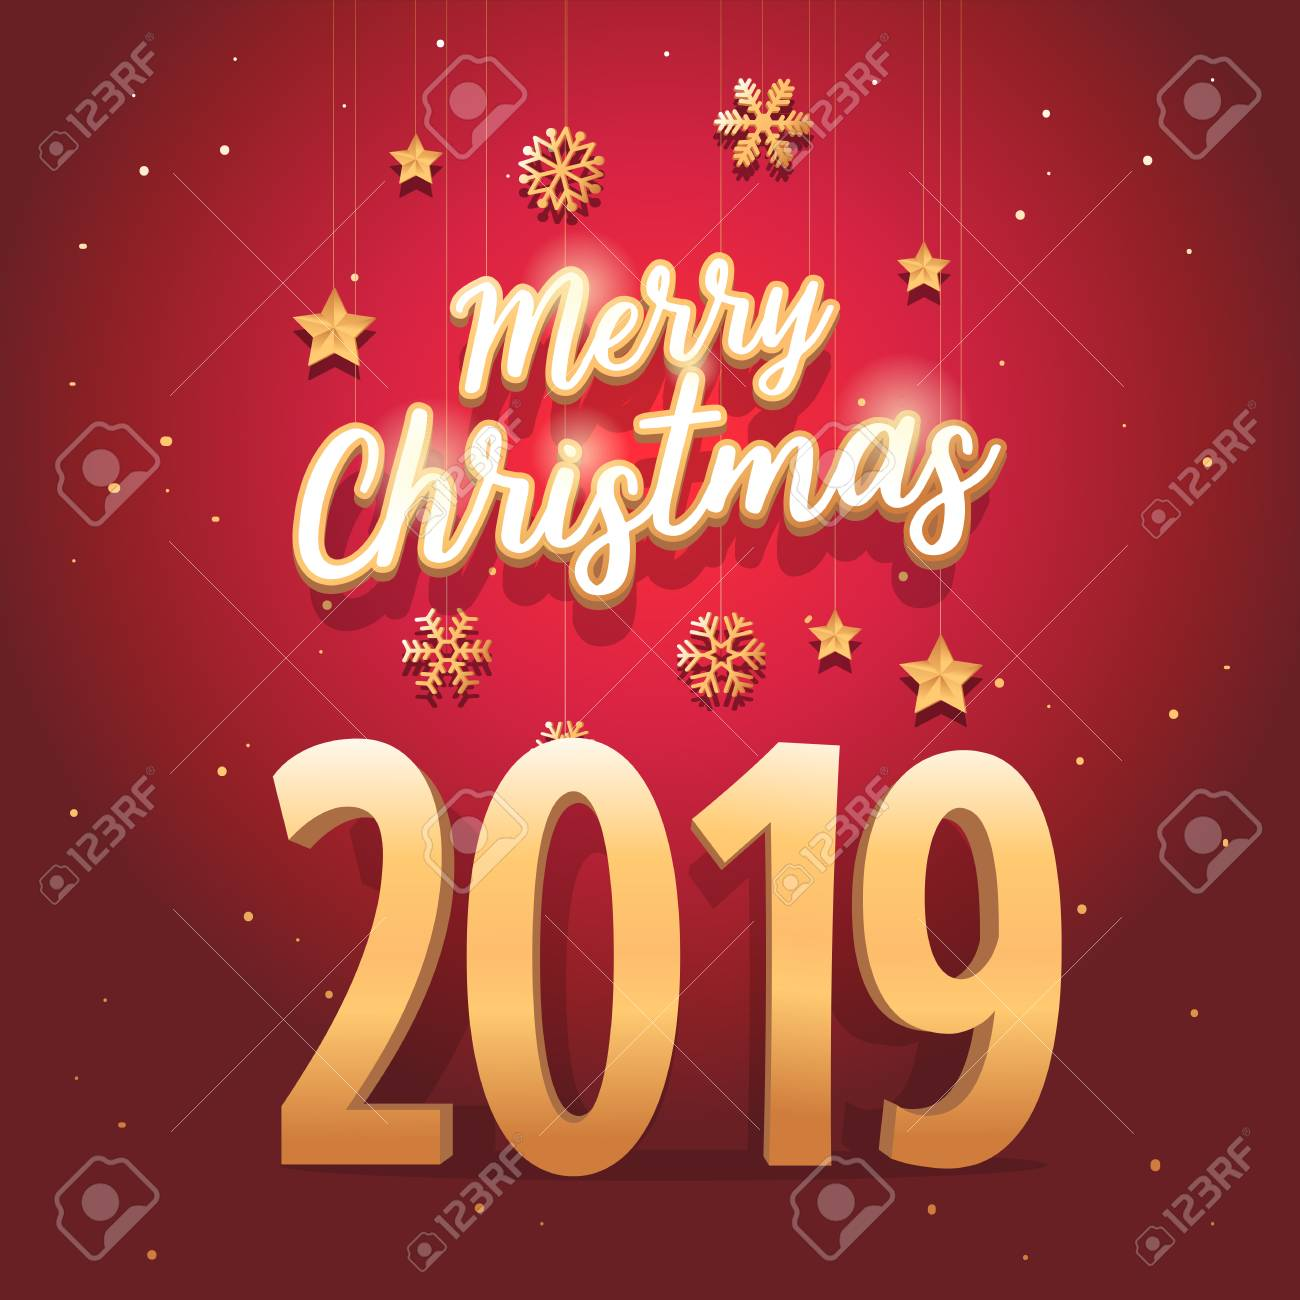 Christmas Day 2019.Merry Christmas 2019 Text With Elegant And Luxurious Style And